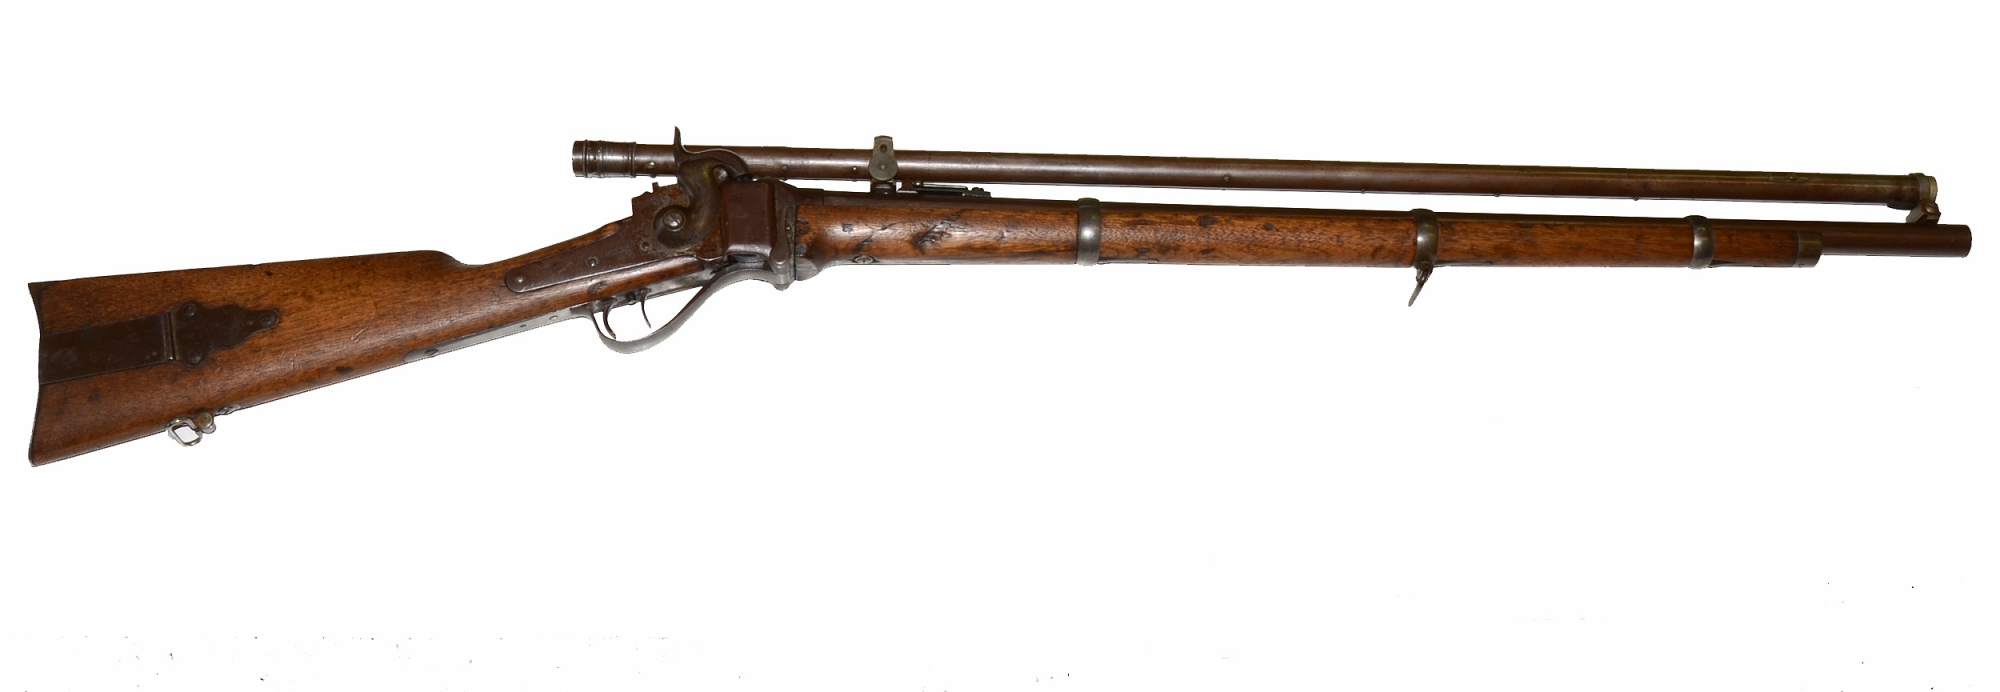 NEW MODEL 1859 SHARPS RIFLE WITH ORIGINAL SCOPE  IN BERDAN